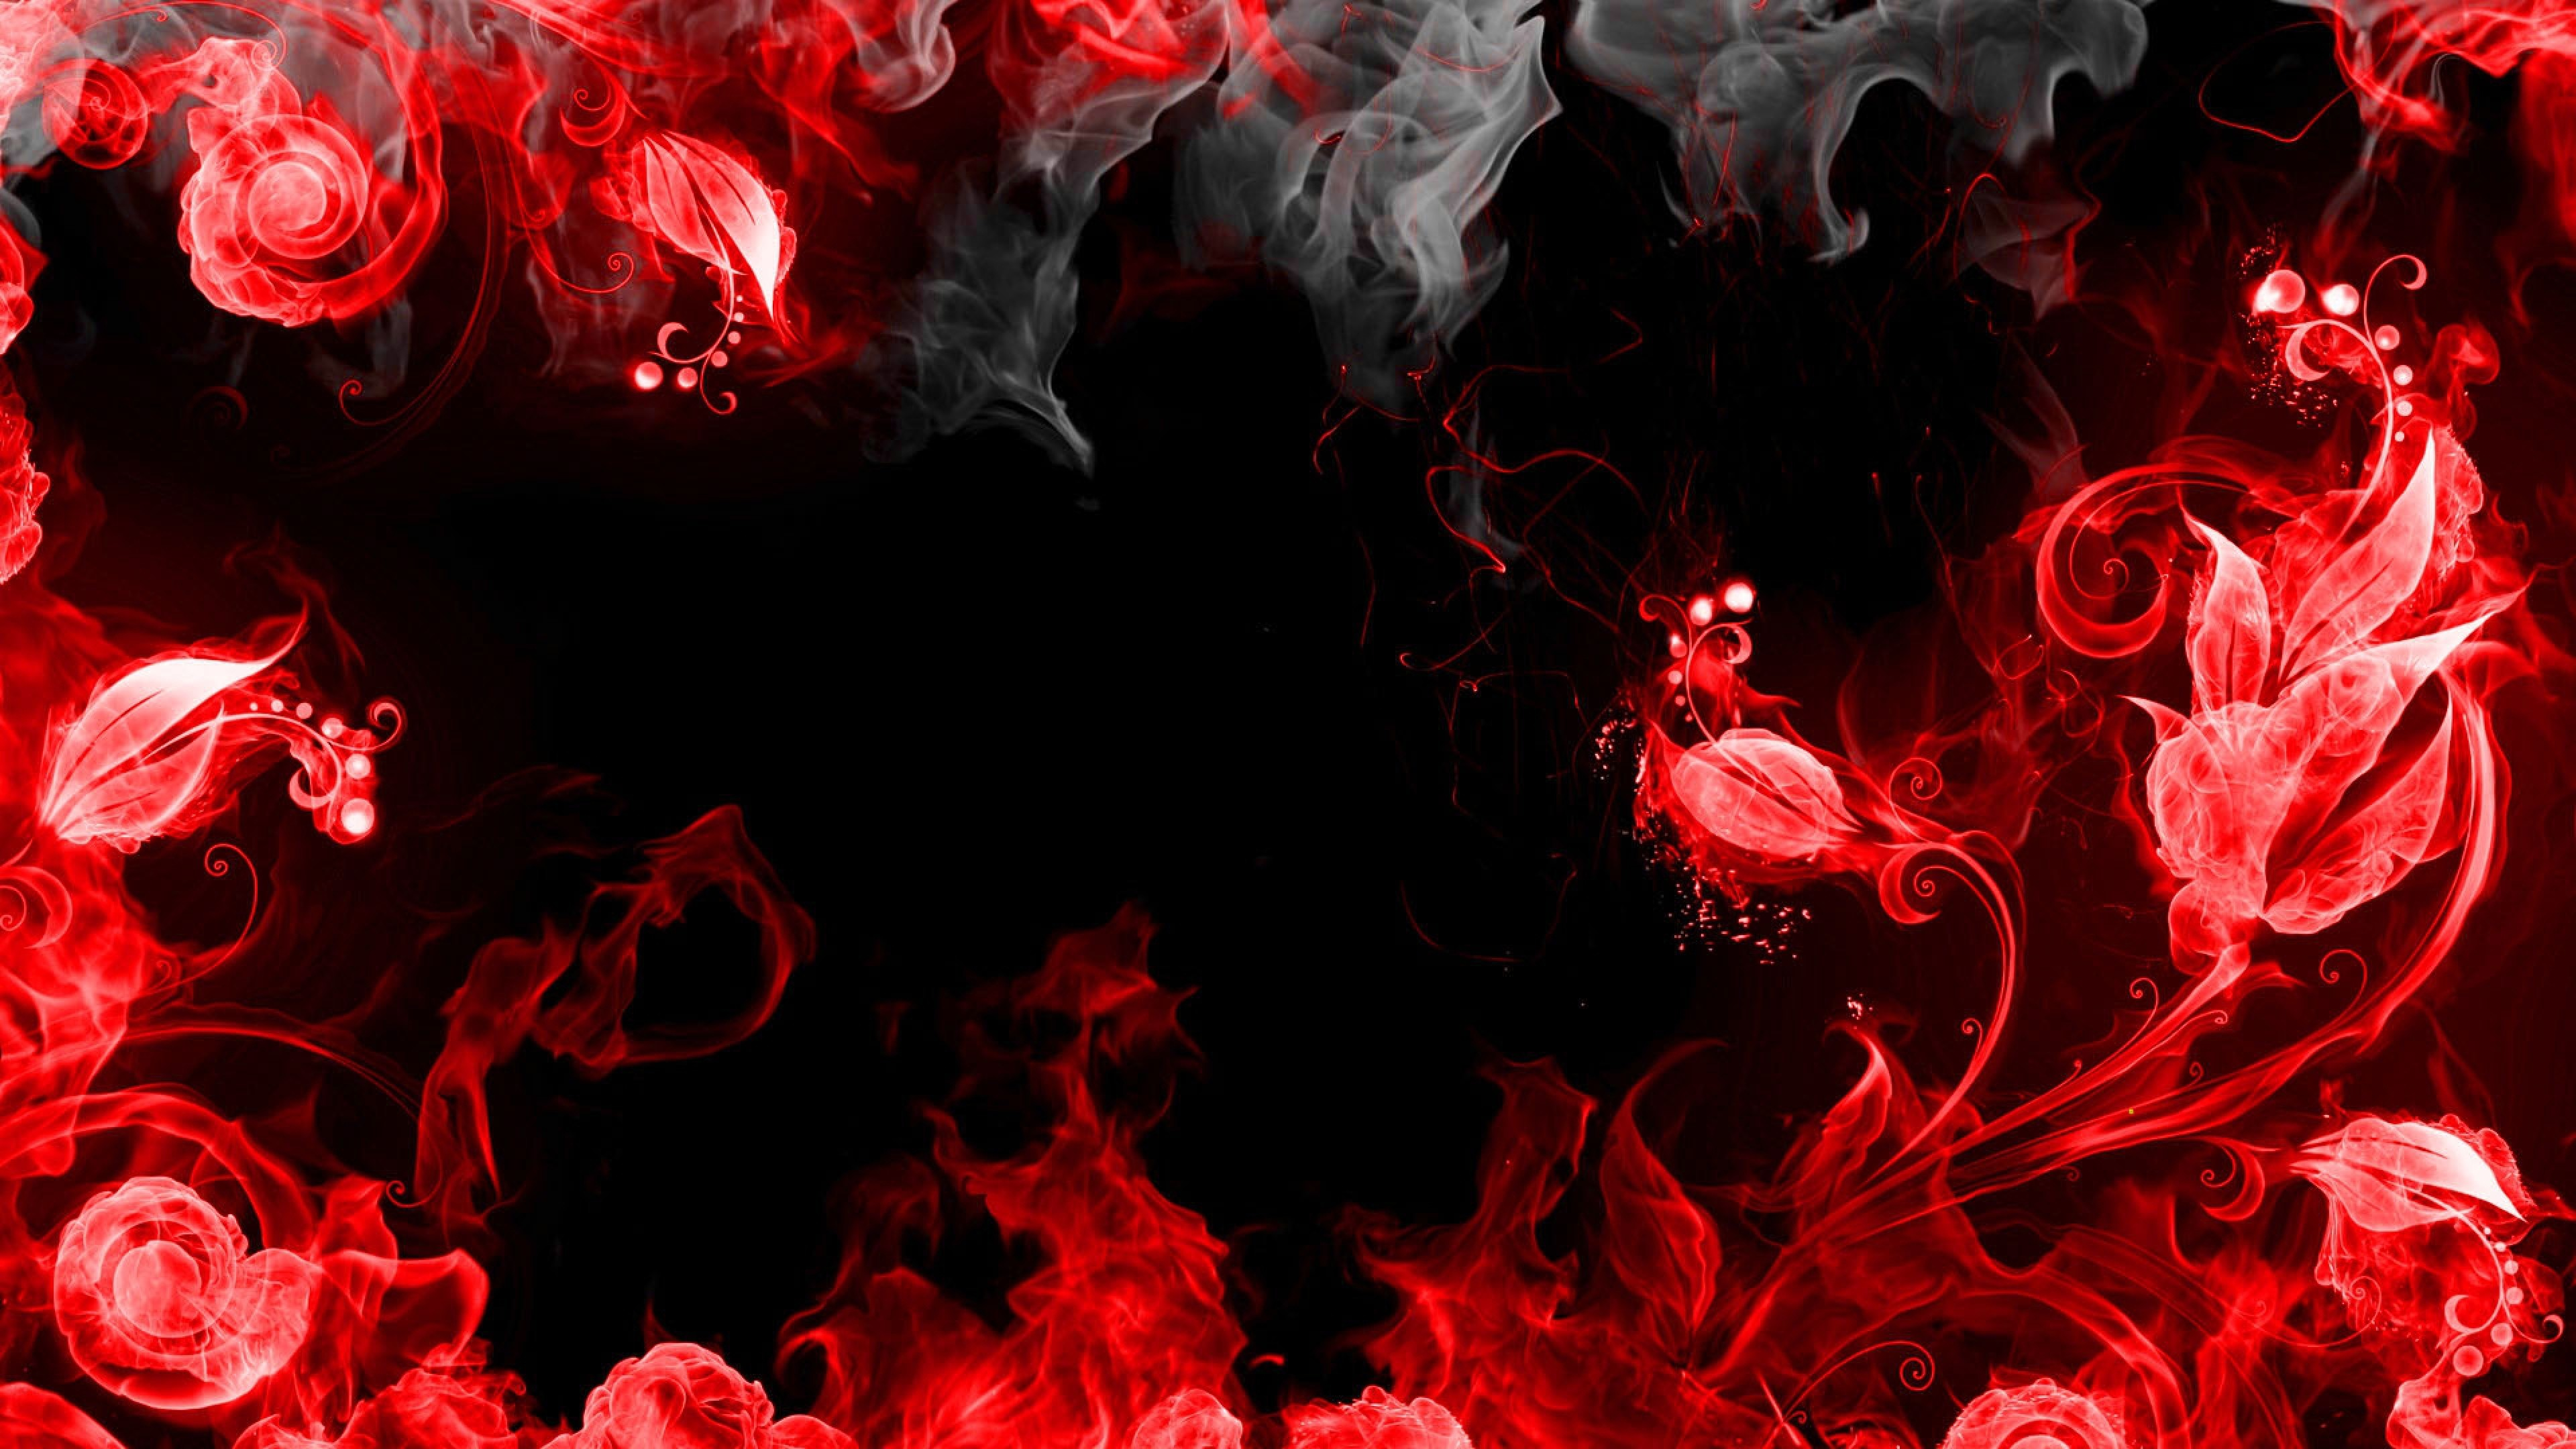 Wallpaper abstraction, red, smoke, black